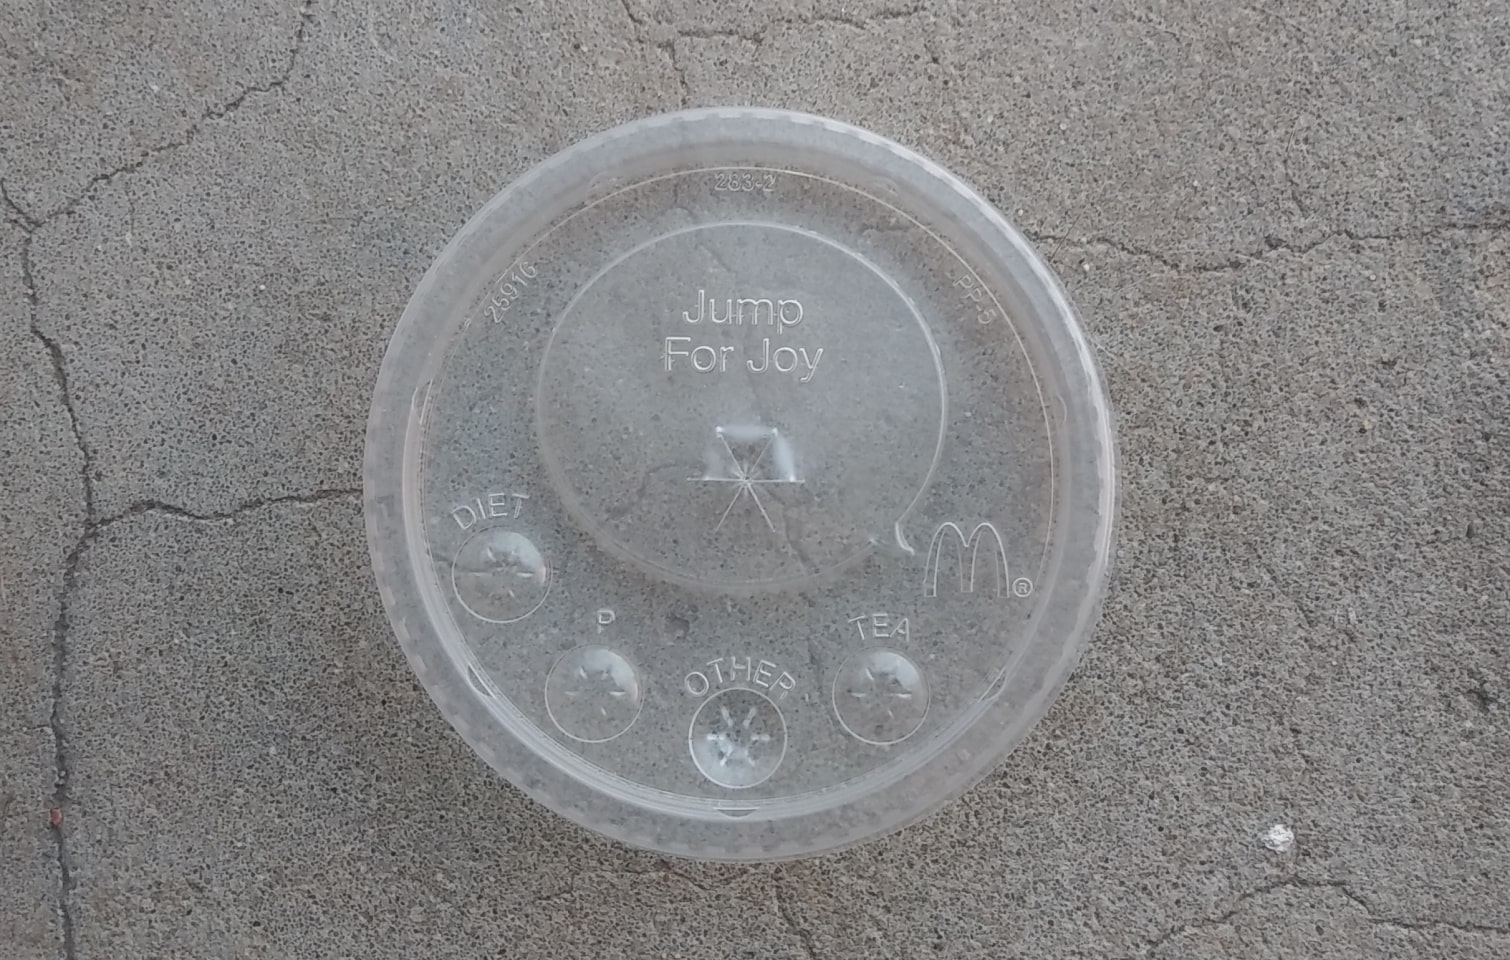 round buttons on your soda cup lid